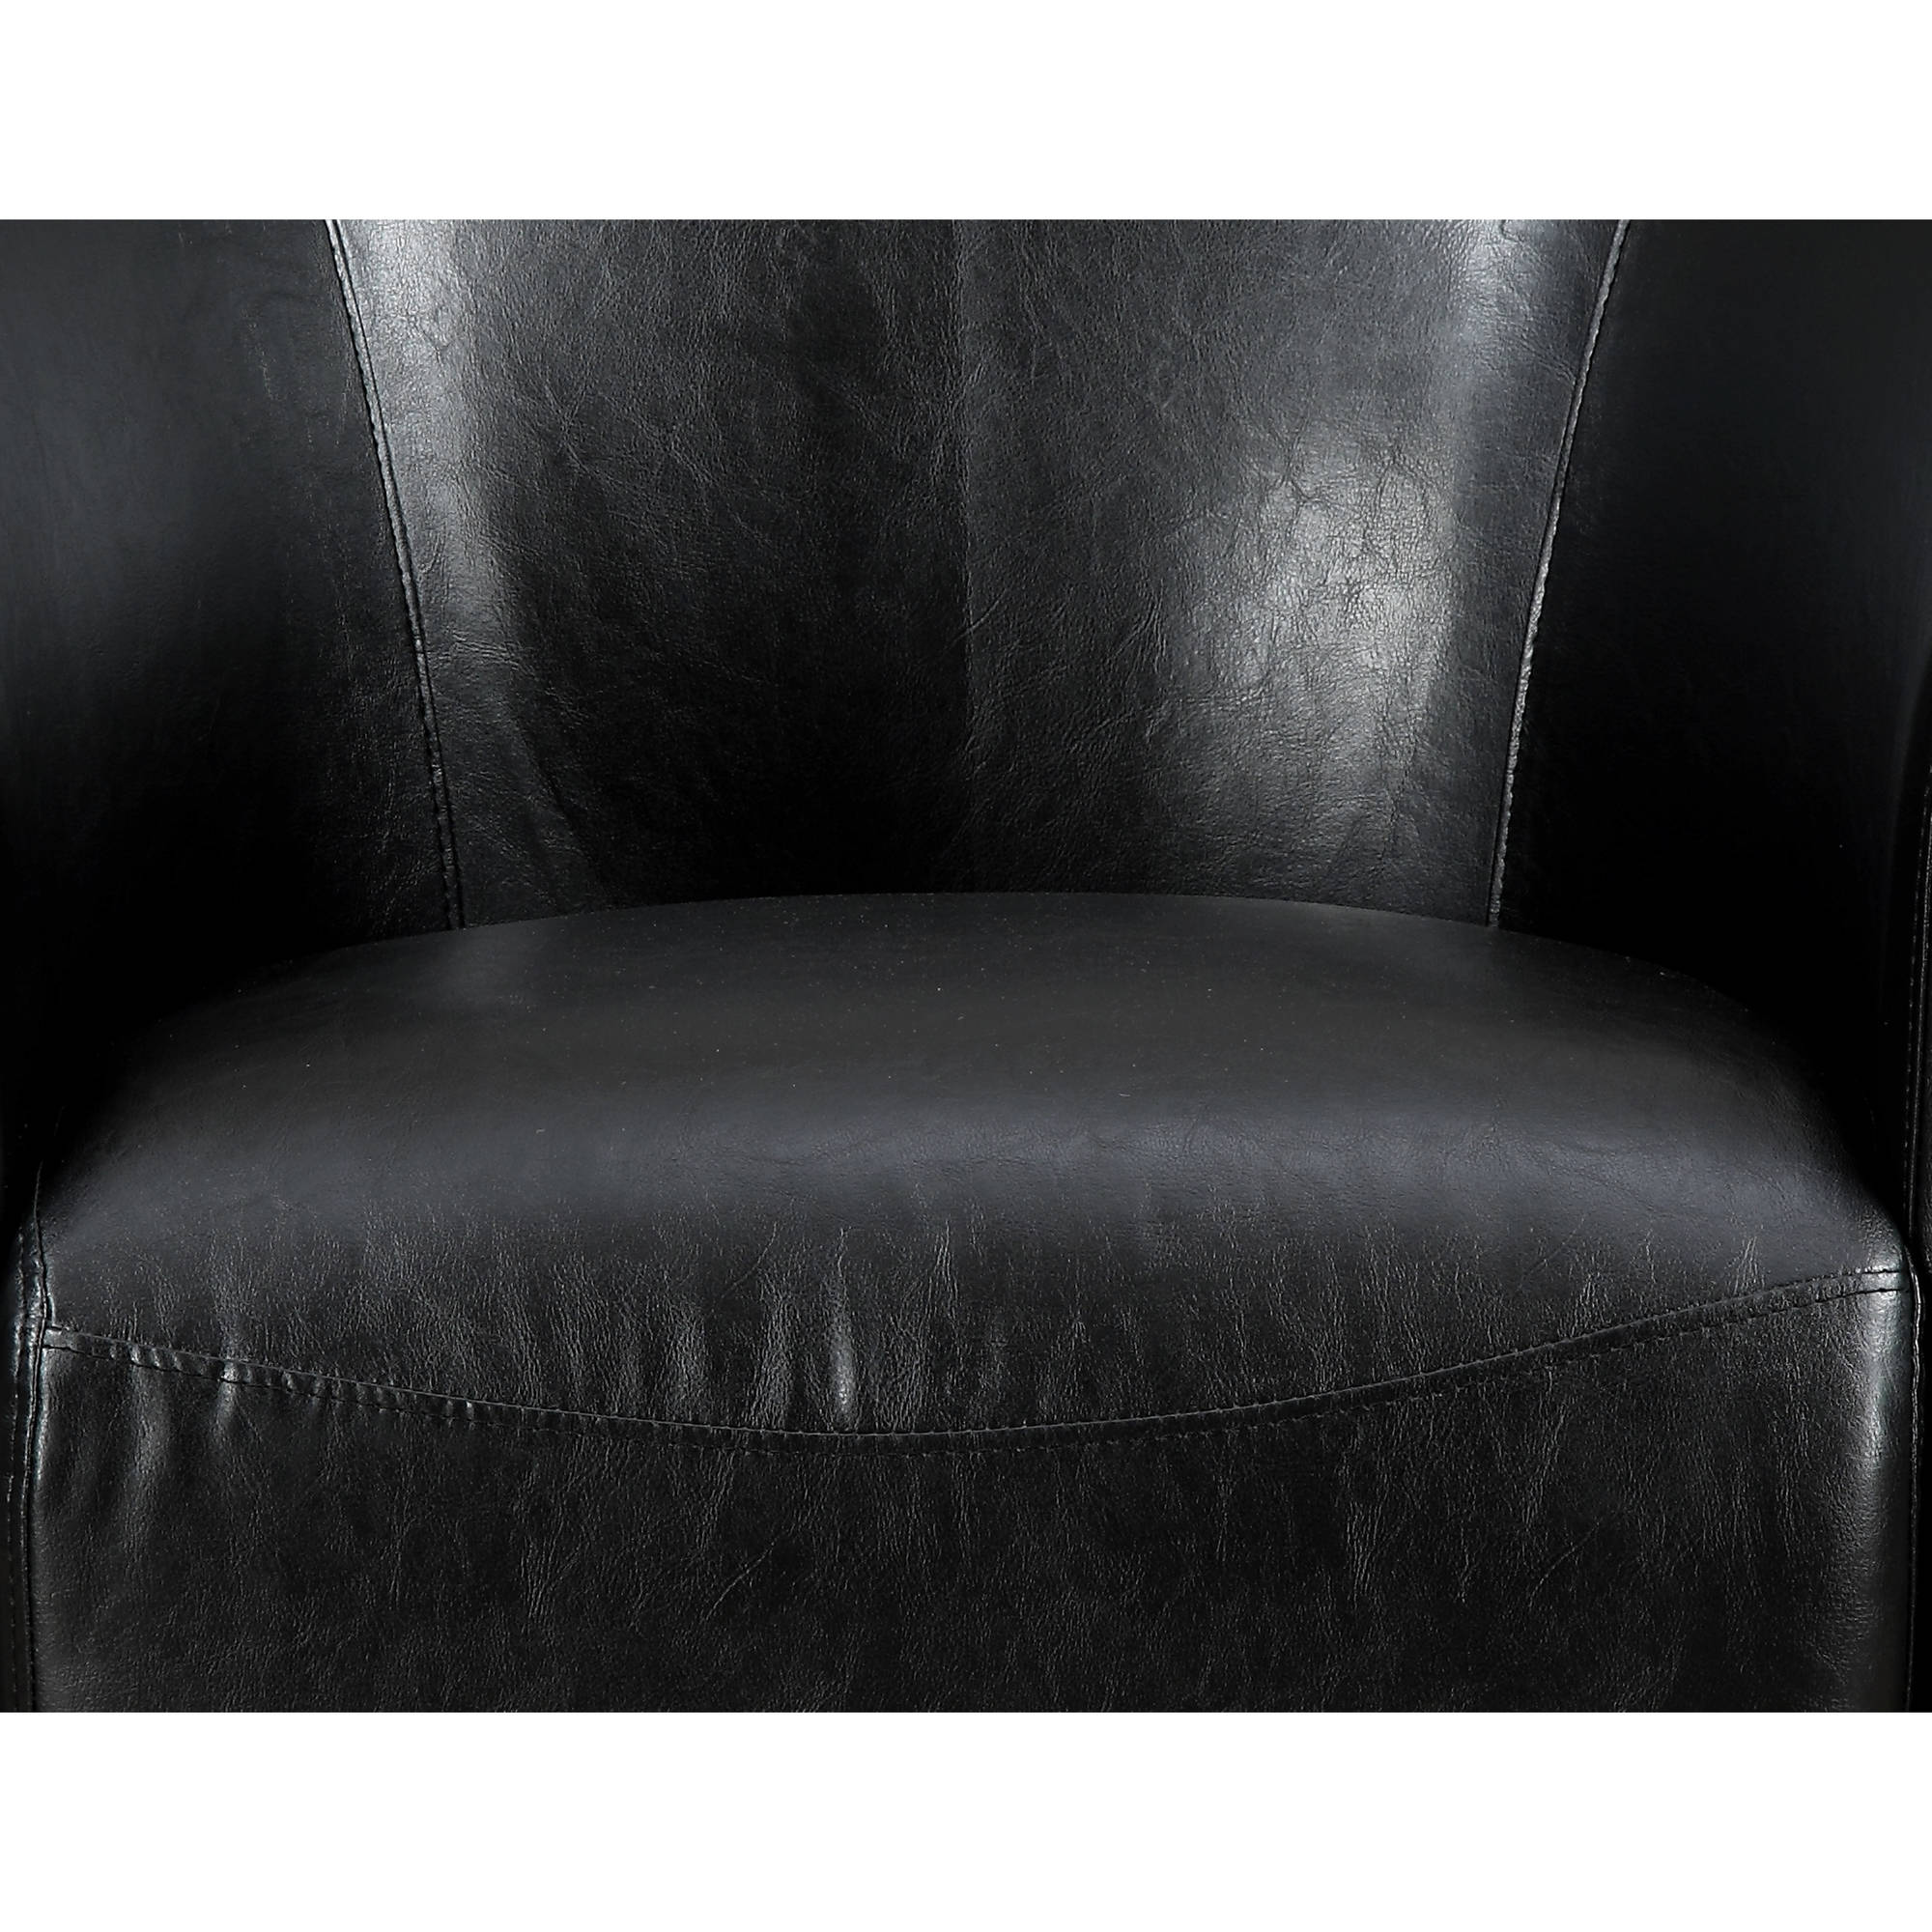 radford accent tub chair dryer chairs for sale picket house furnishings black walmart com